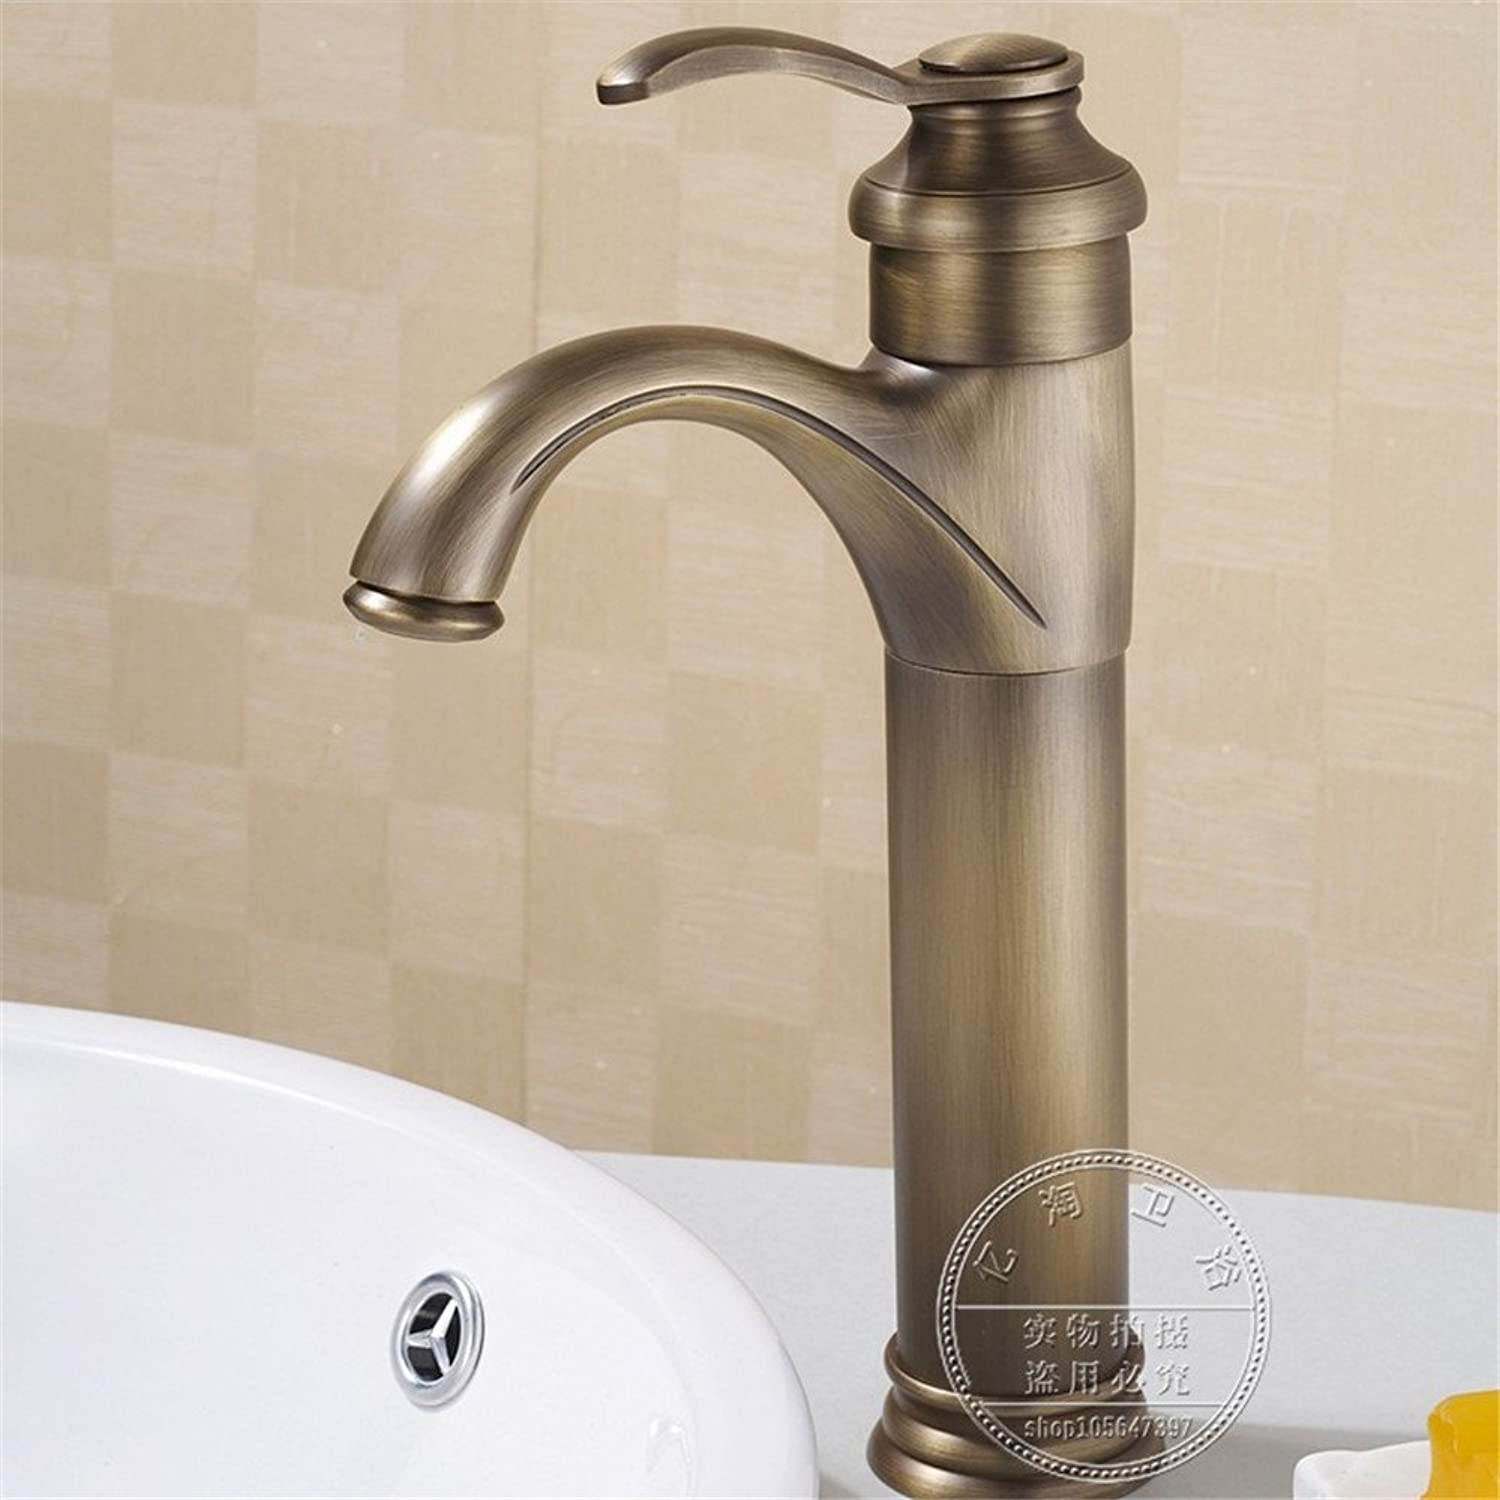 Hlluya Professional Sink Mixer Tap Kitchen Faucet The high-copper hot and cold water basin mixer